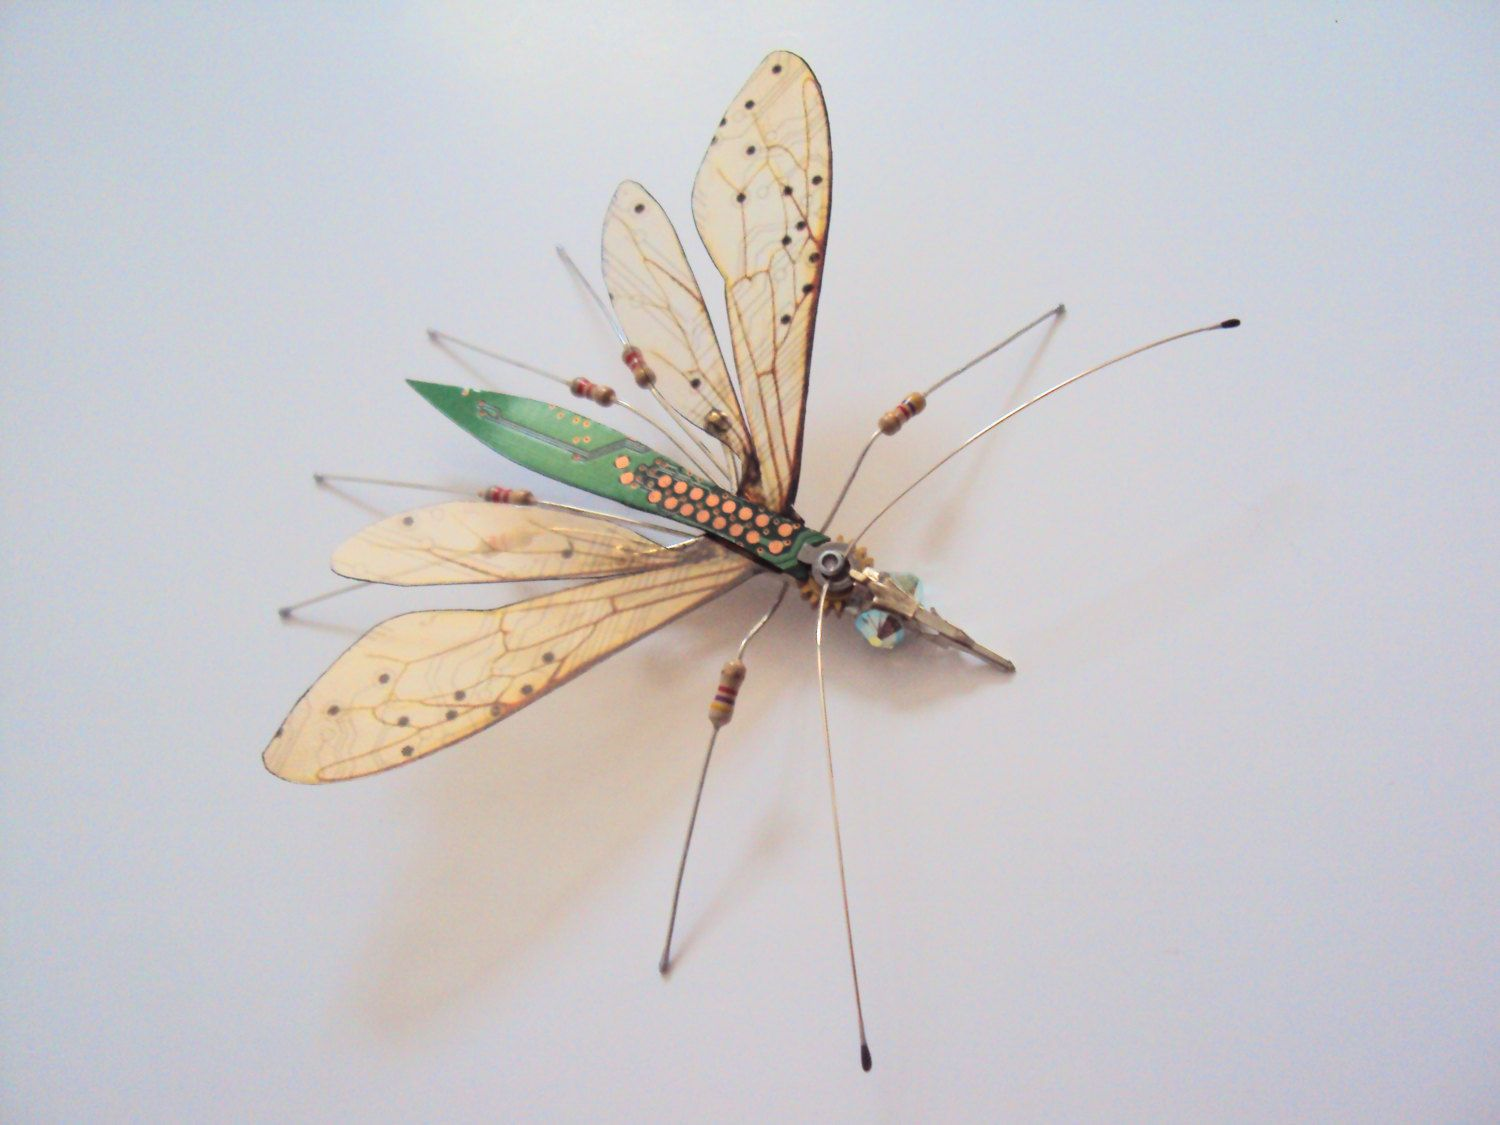 how to get rid of mayflies in the house